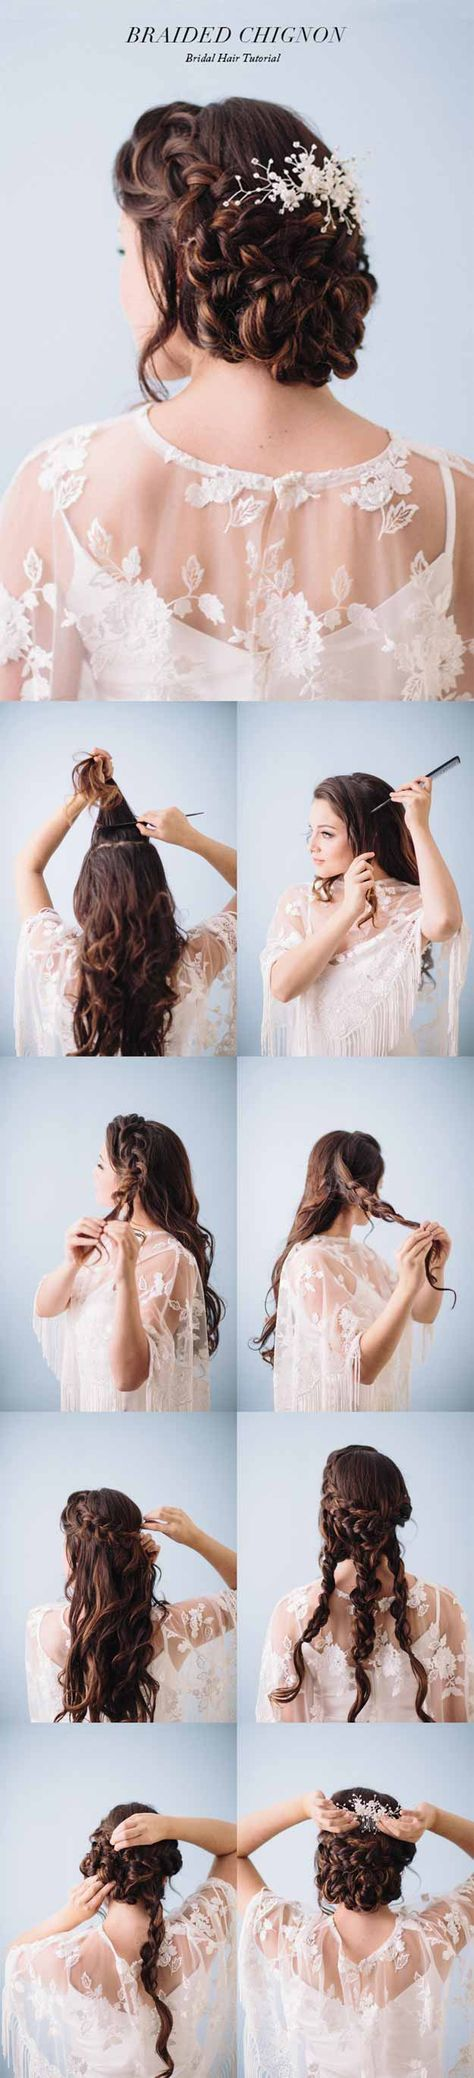 Trendy wedding hairstyles to the side braid simple 44+ ideas